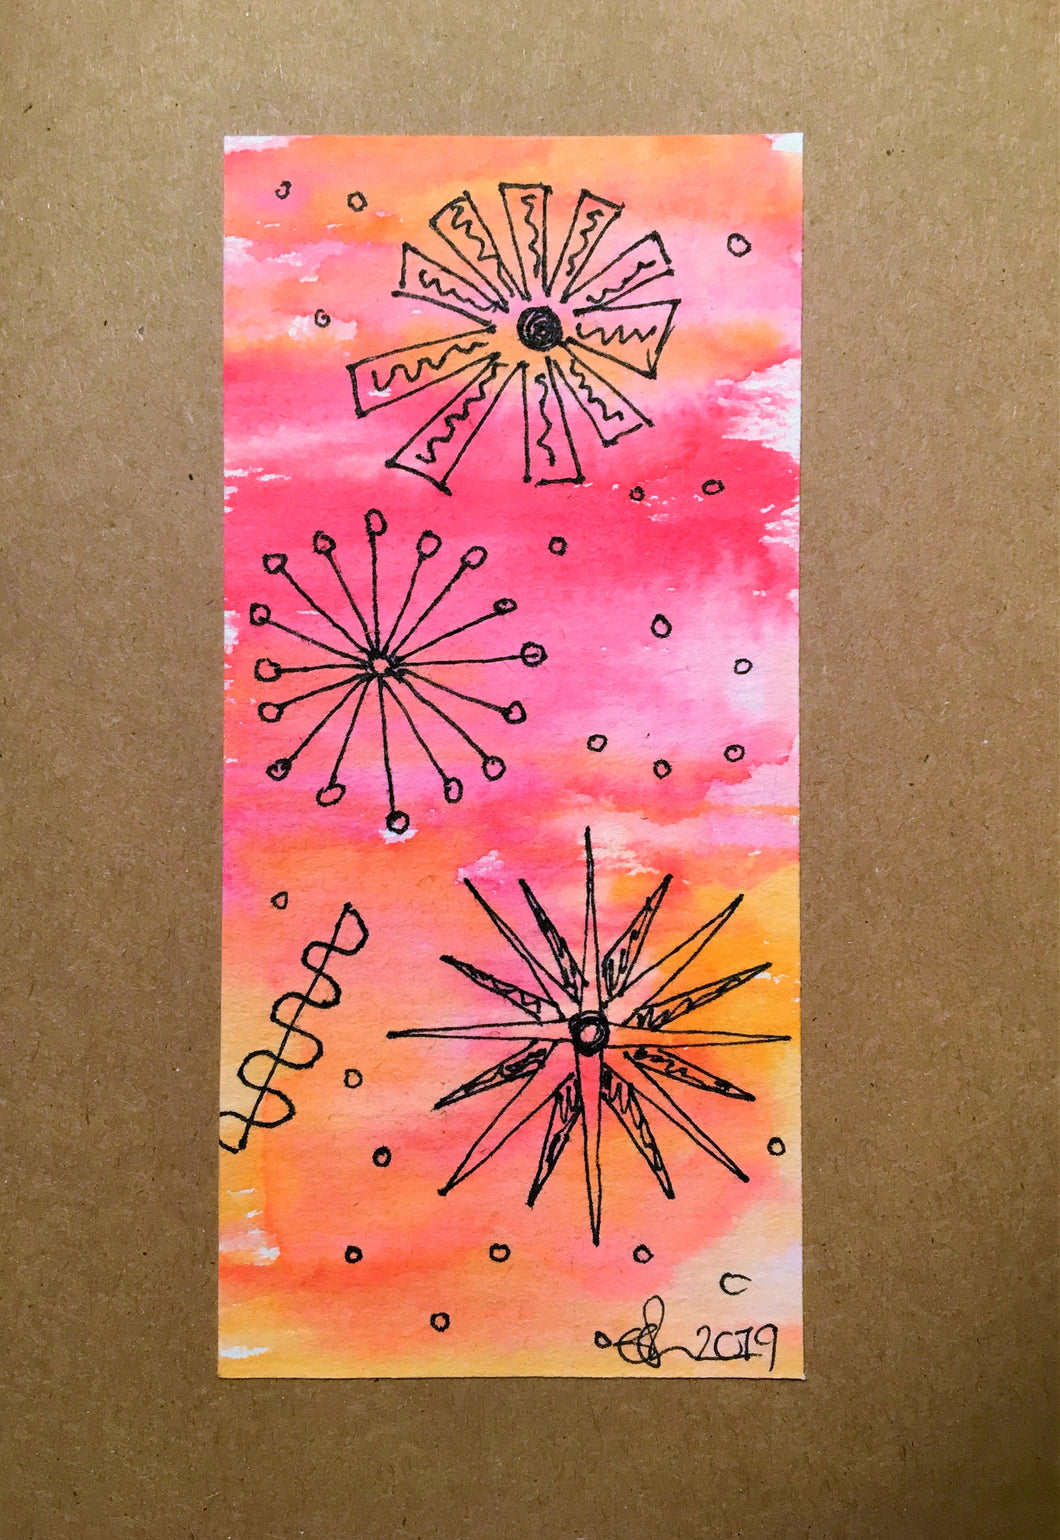 Handpainted Watercolour Greeting Card - Abstract Ink Star/Circle Design - Pink/Orange/Red - eDgE dEsiGn London